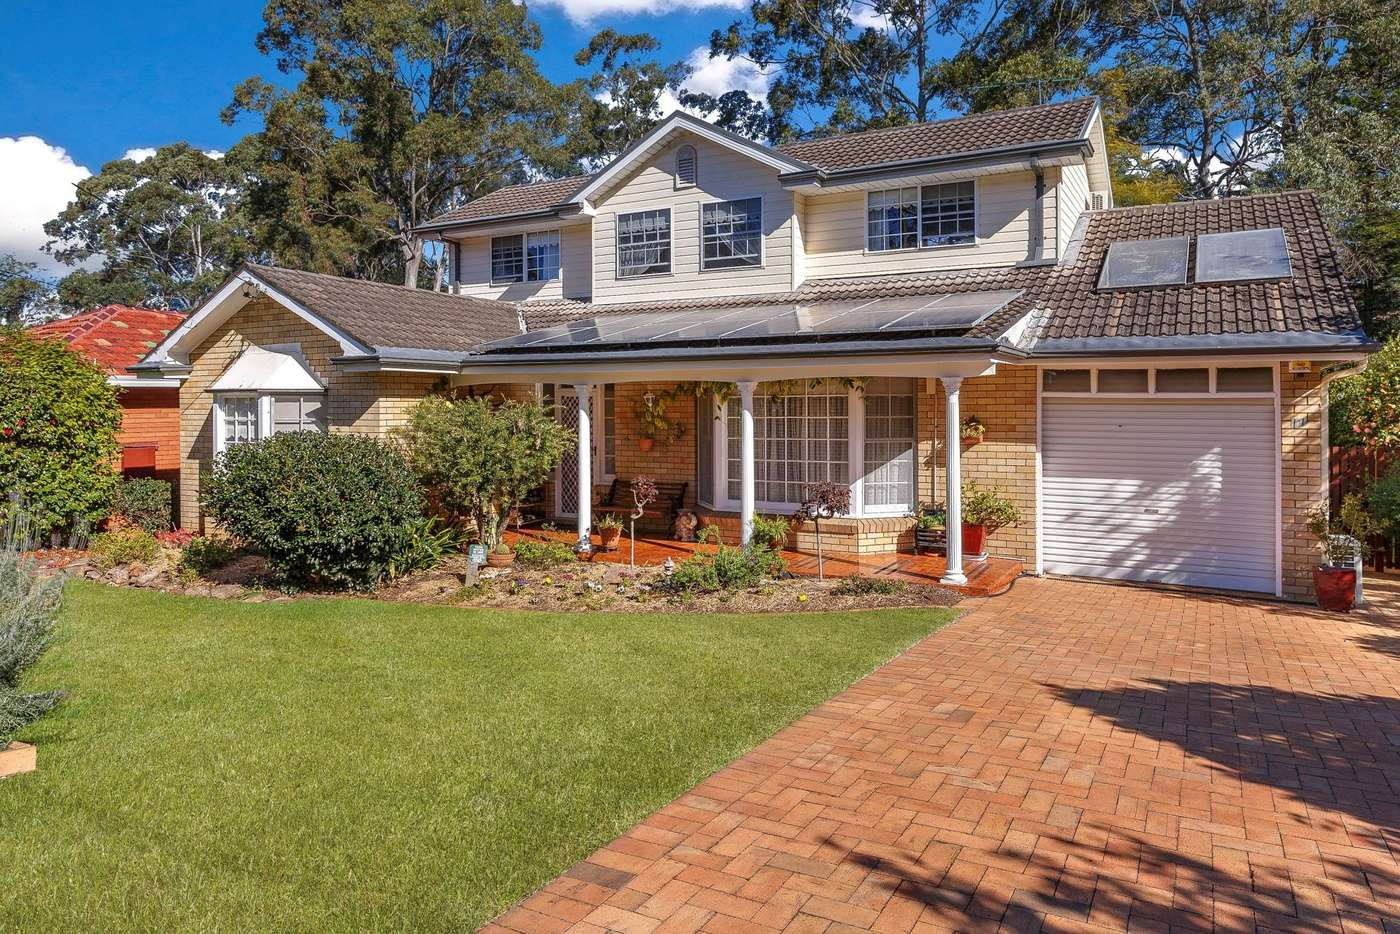 Main view of Homely house listing, 11 Harley Crescent, Eastwood NSW 2122